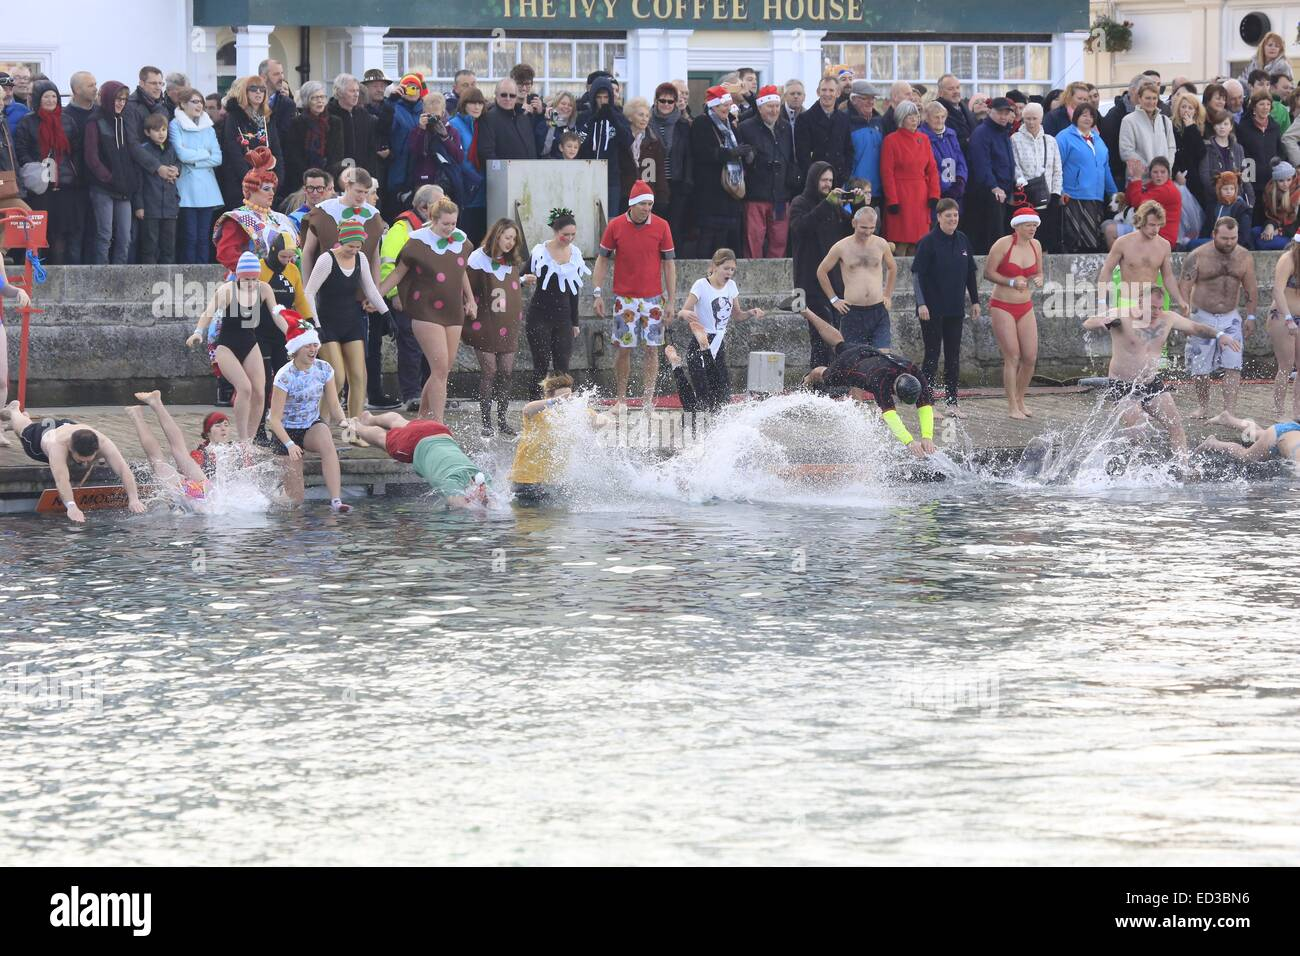 Weymouth, Dorset, UK. 25 December 2014:  Thousands of spectators watched over 200 Swimmers take part in the 67th Stock Photo